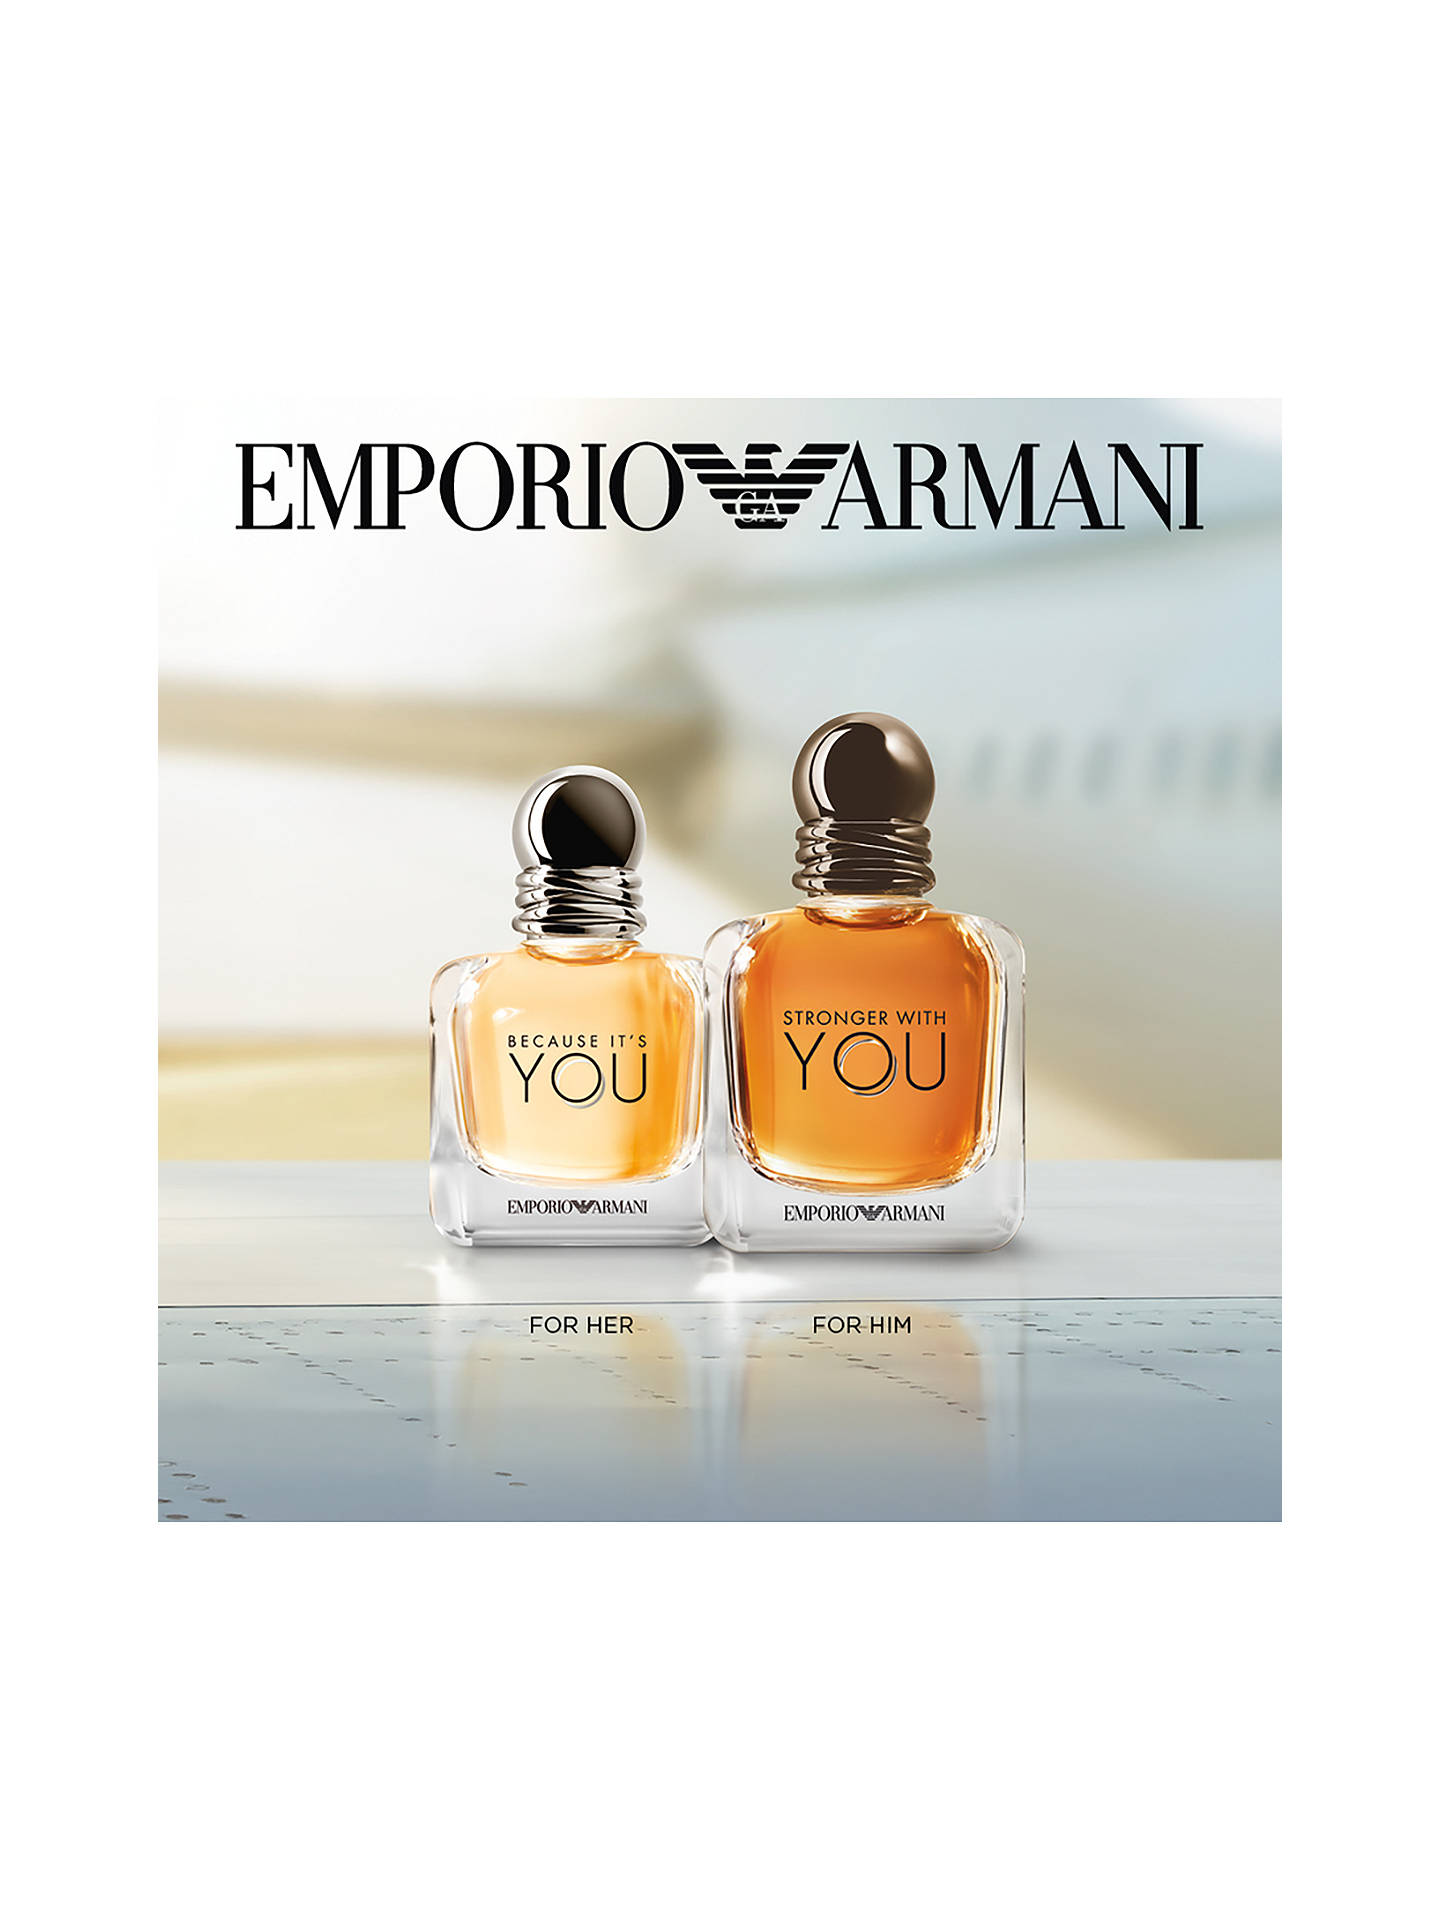 85d48eed00 Buy Emporio Armani Because It's You Eau de Parfum, 30ml Online at  johnlewis. ...